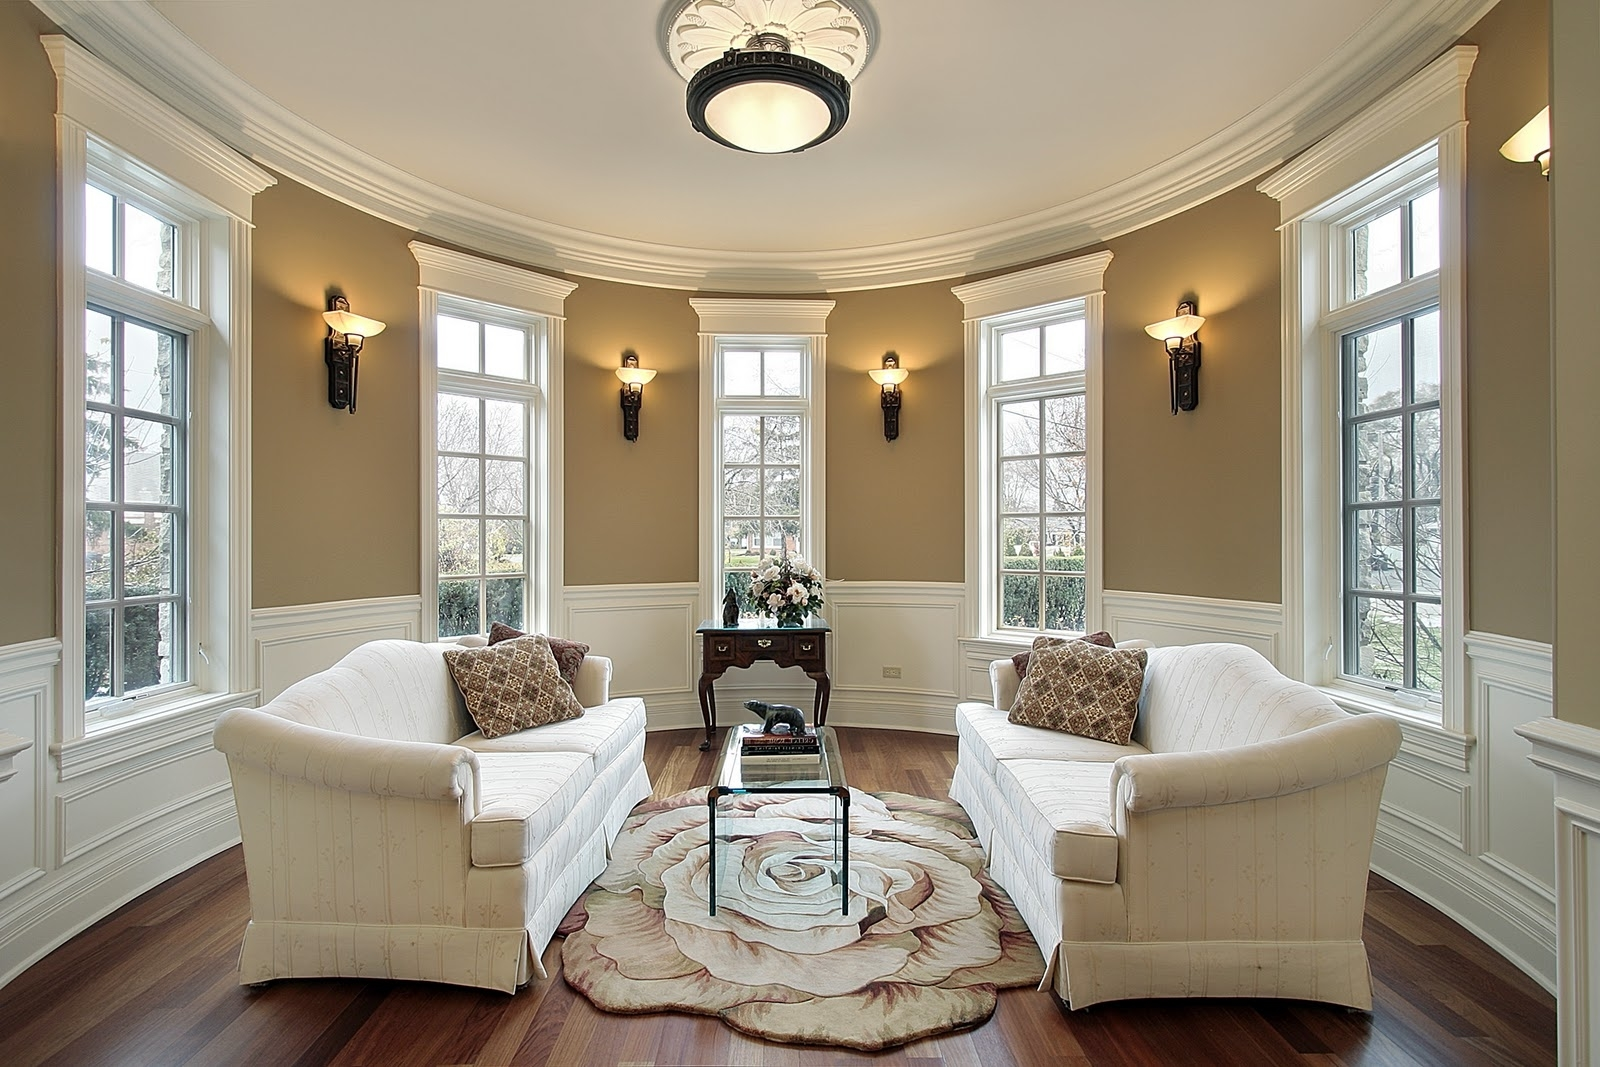 Living room lighting - 28 ways to light up your room ... on Living Room Wall Sconce Ideas For Dining Area id=71961